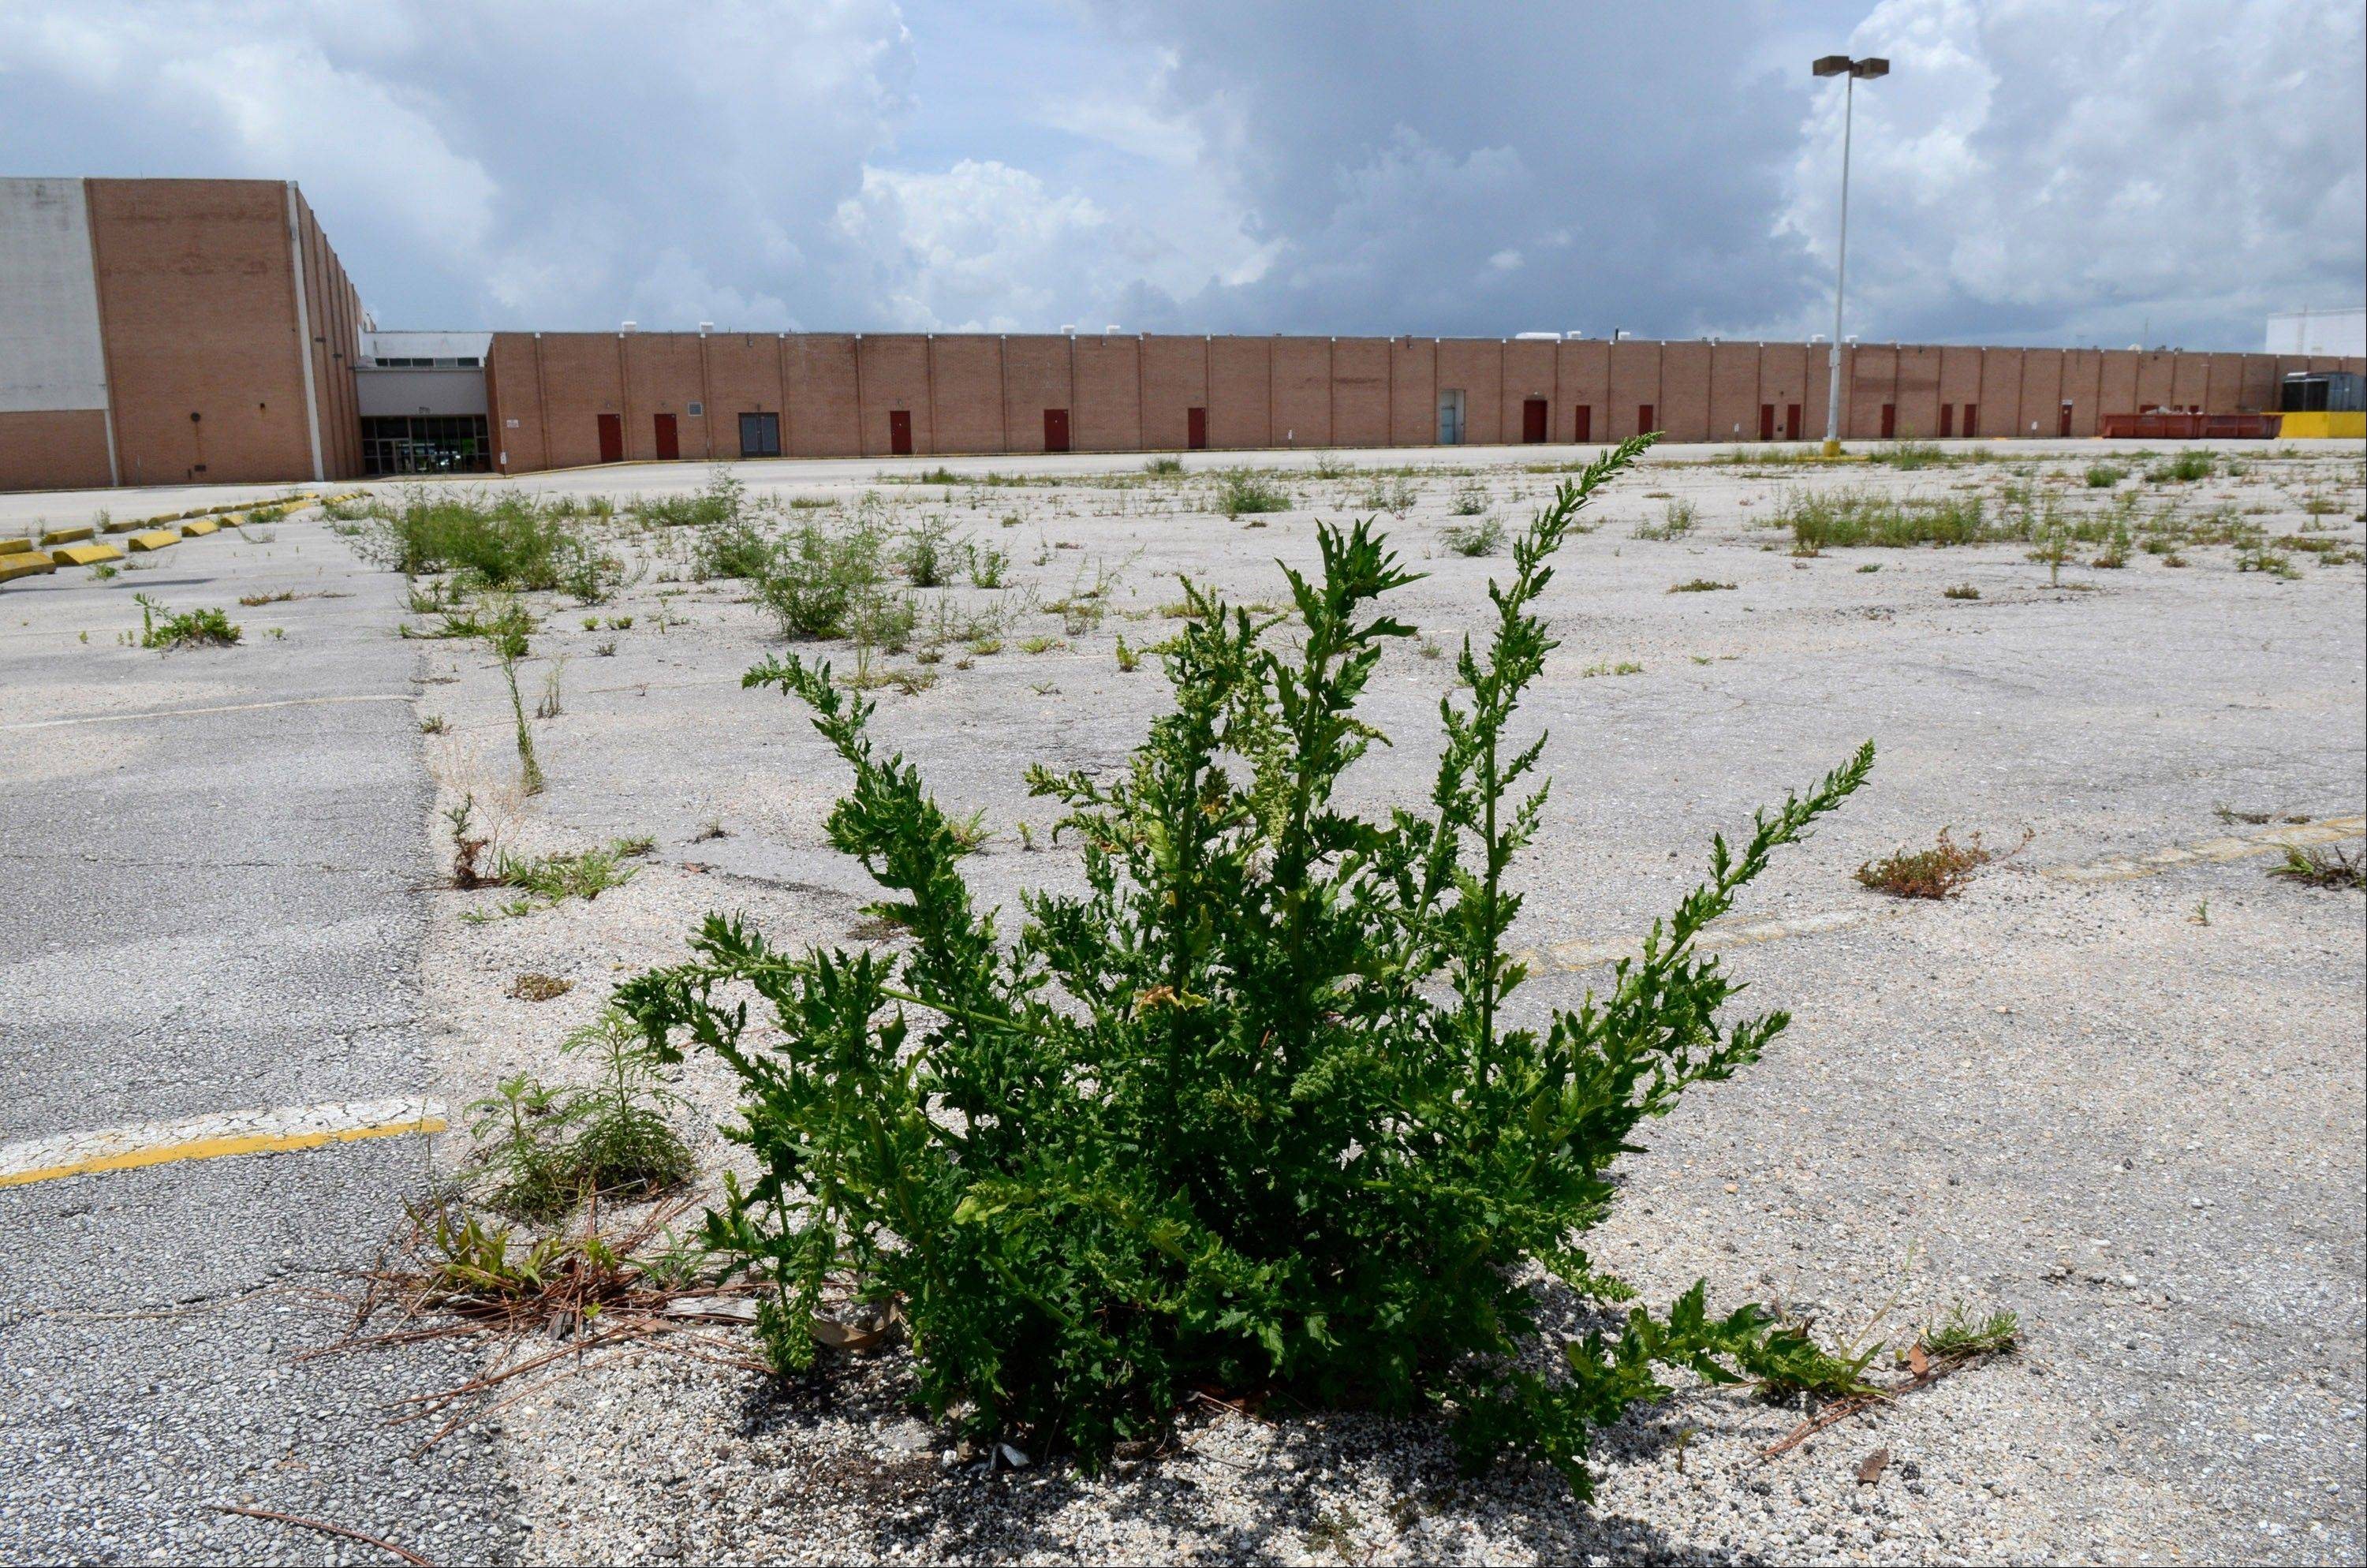 "Weeds rise up through the asphalt in a parking lot outside the Miracle City Mall in Rockledge, Fla. An uncertain future faces cities in Florida's ""Space Coast"" as the space shuttle program comes to an end."